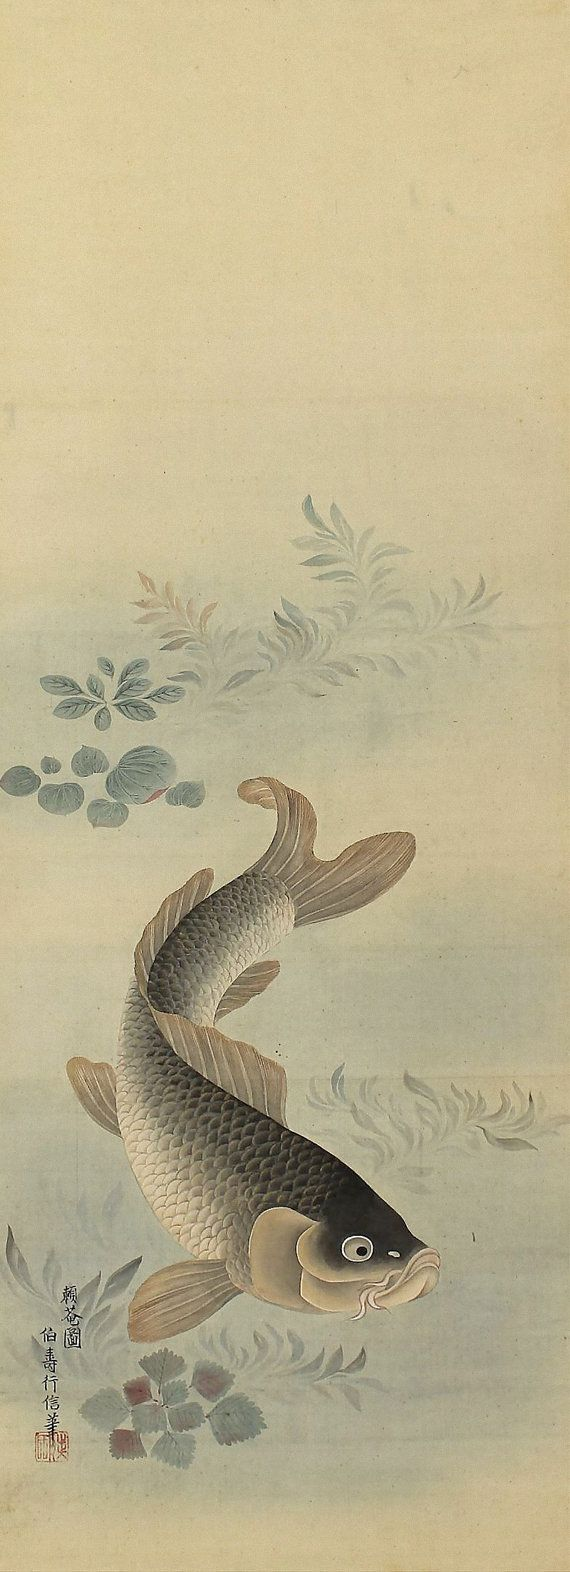 Antique Japanese Art Painting Koi Fish Carp Hanging Scroll - 131001 on Etsy, $580.00